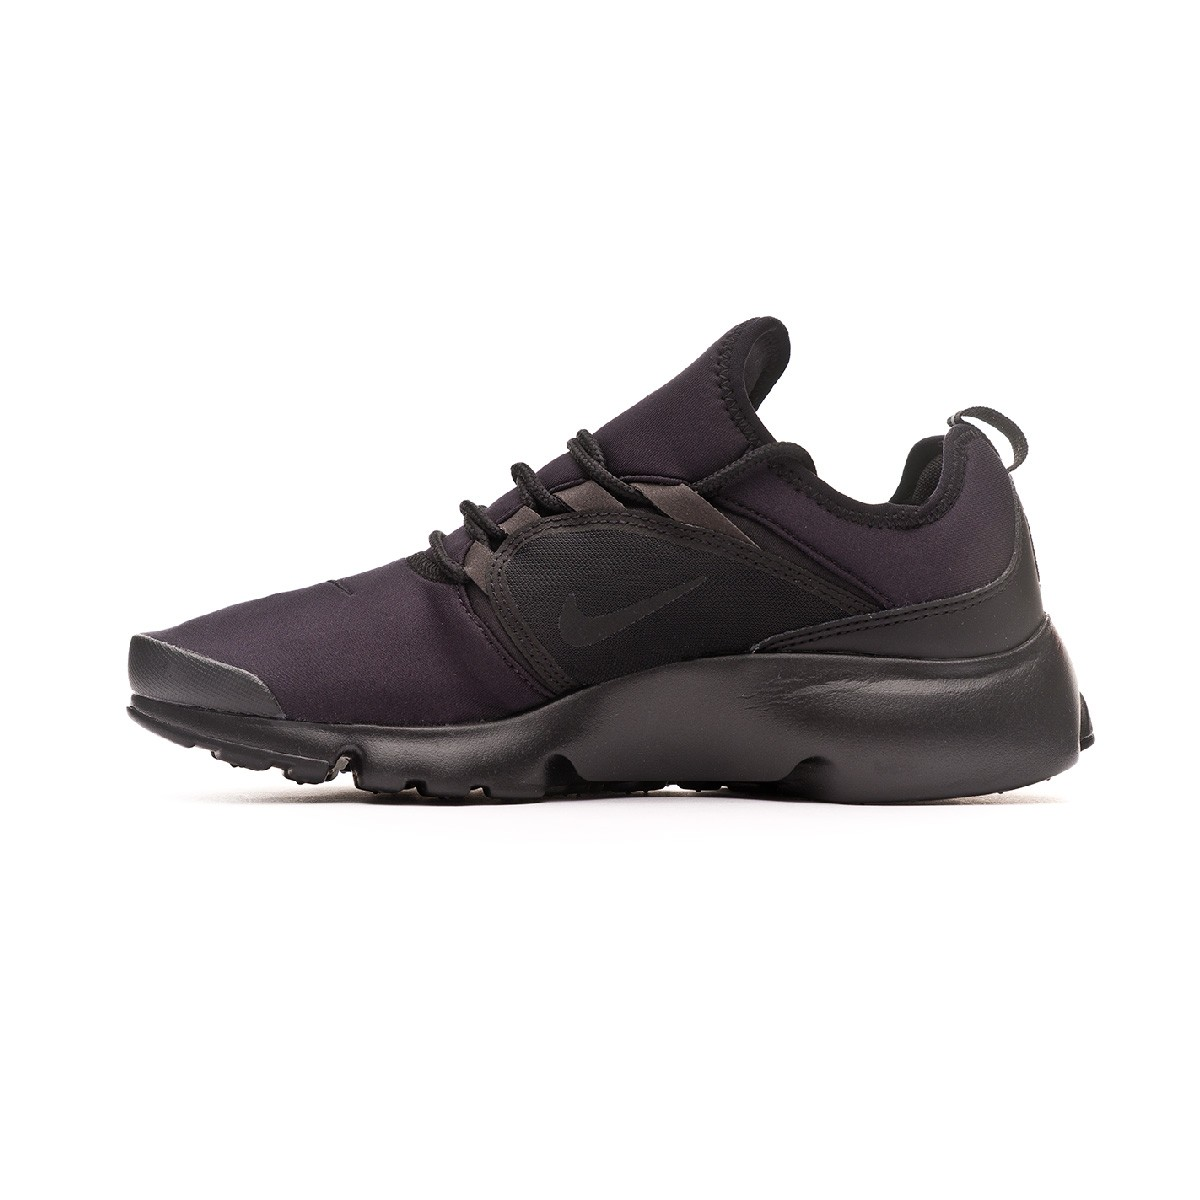 Tenis Nike Presto Fly World 2019